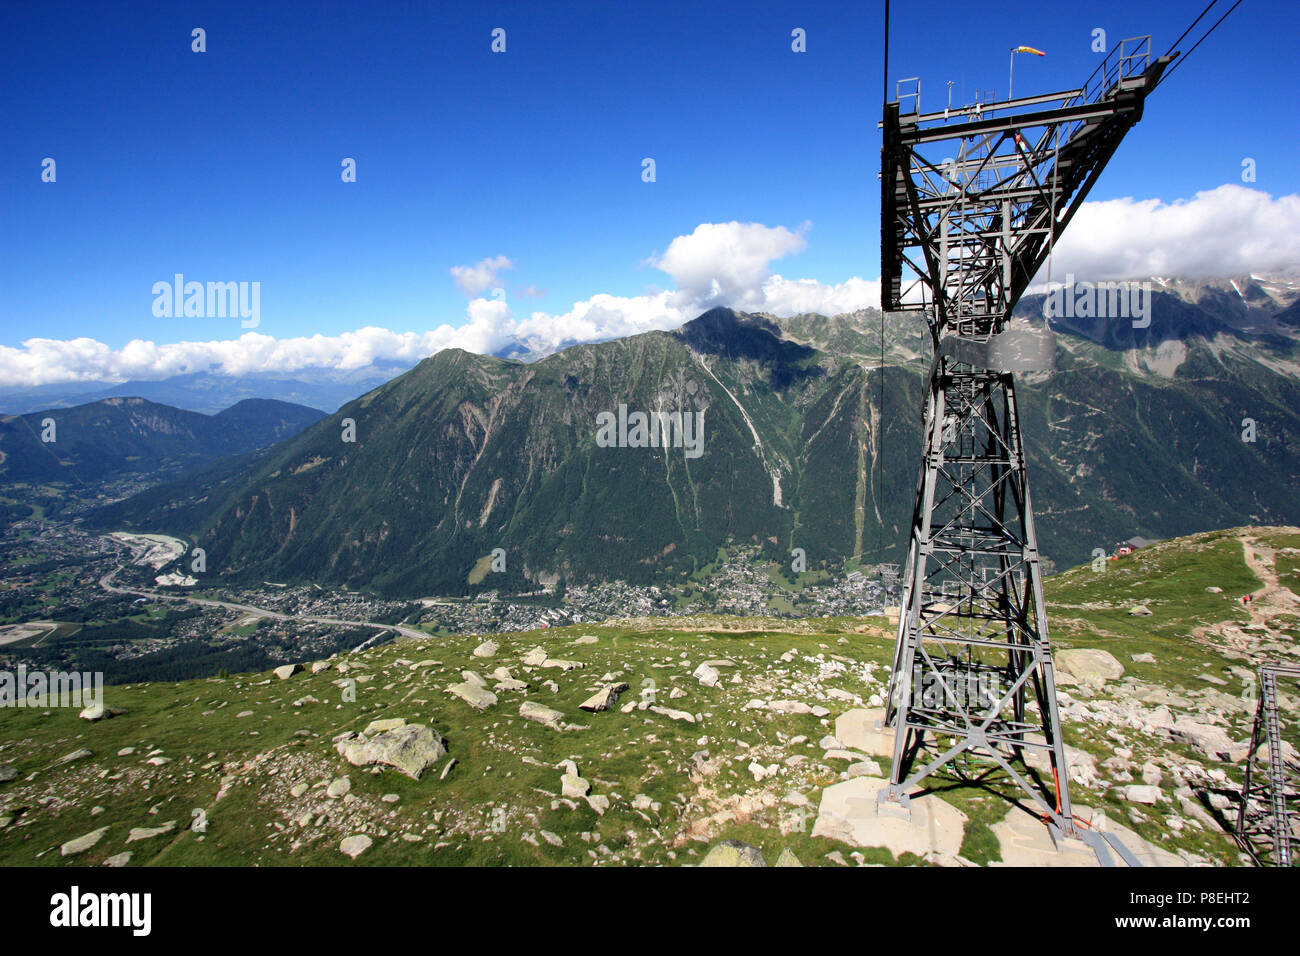 Aerial lift pylon of the Aiguille du Midi cable car above Chamonix, France - Stock Image